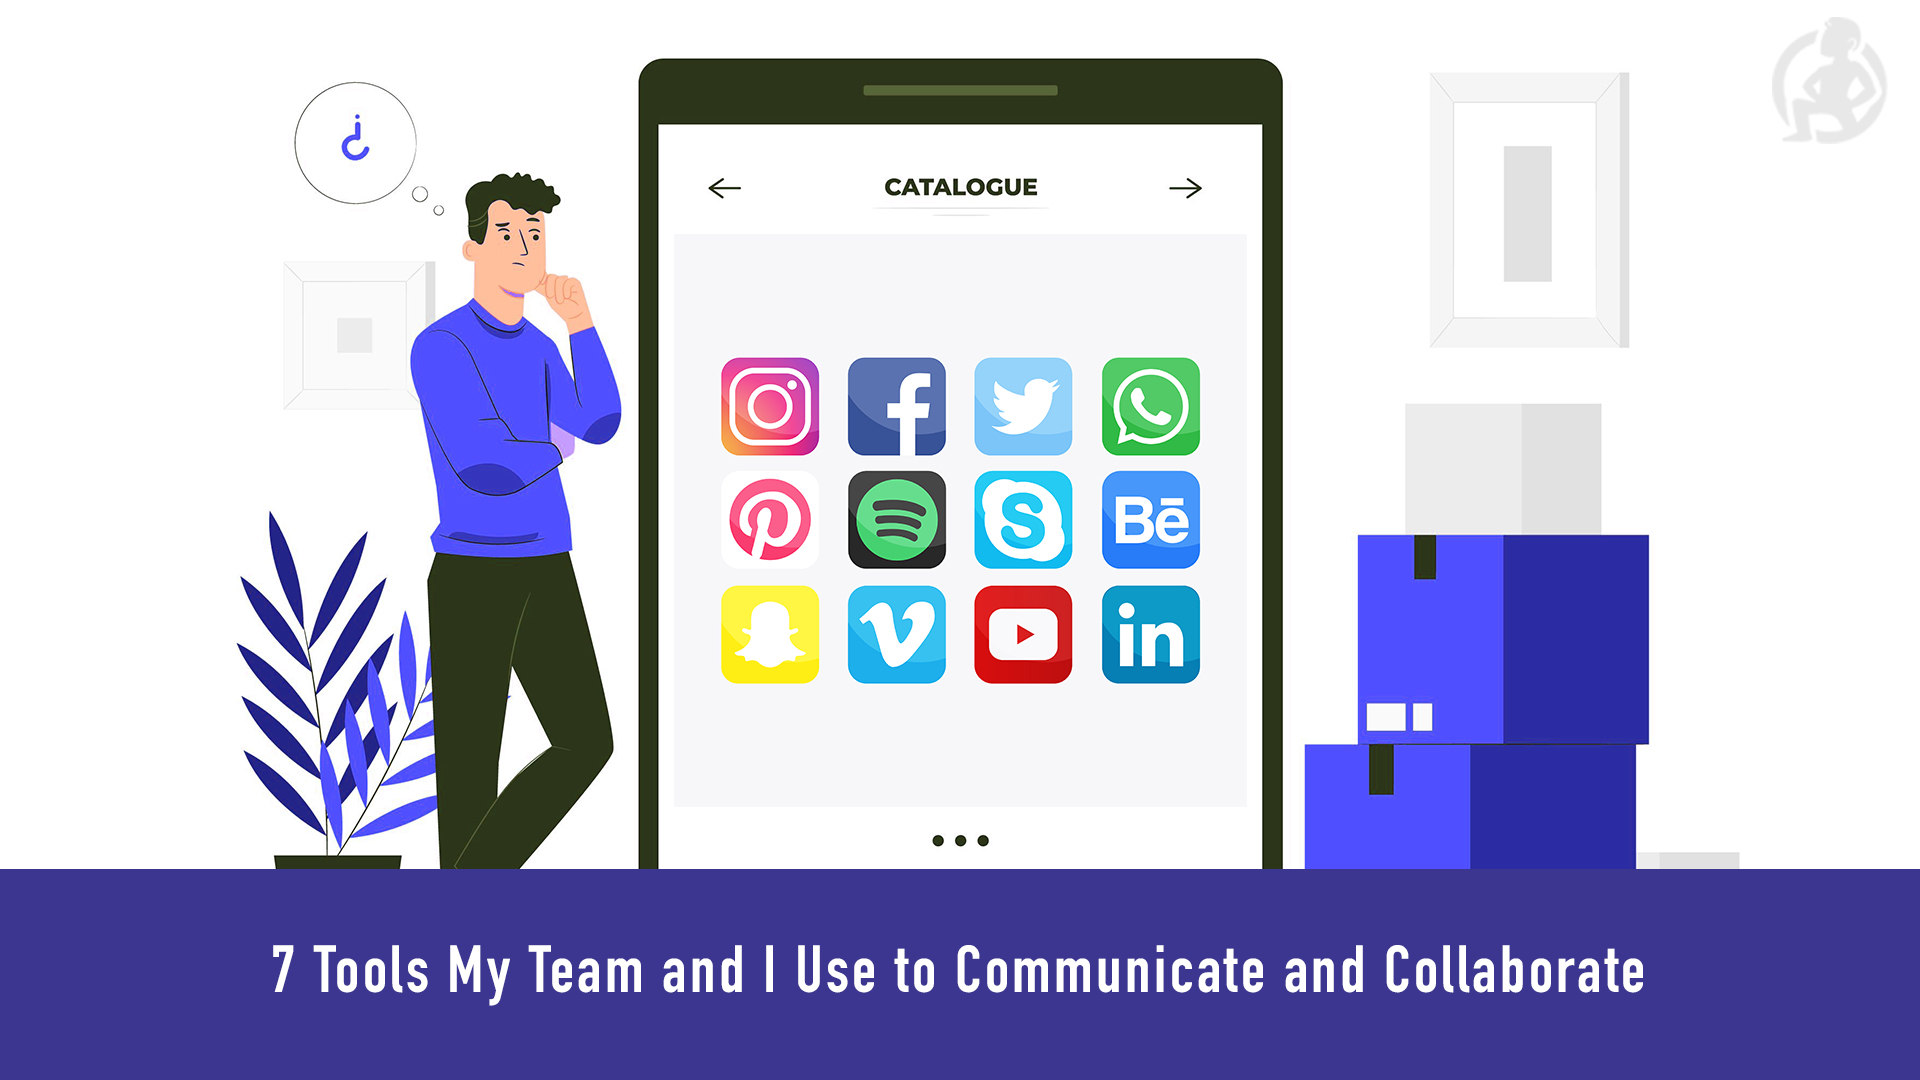 7 Tools My Team and I Use to Communicate and Collaborate